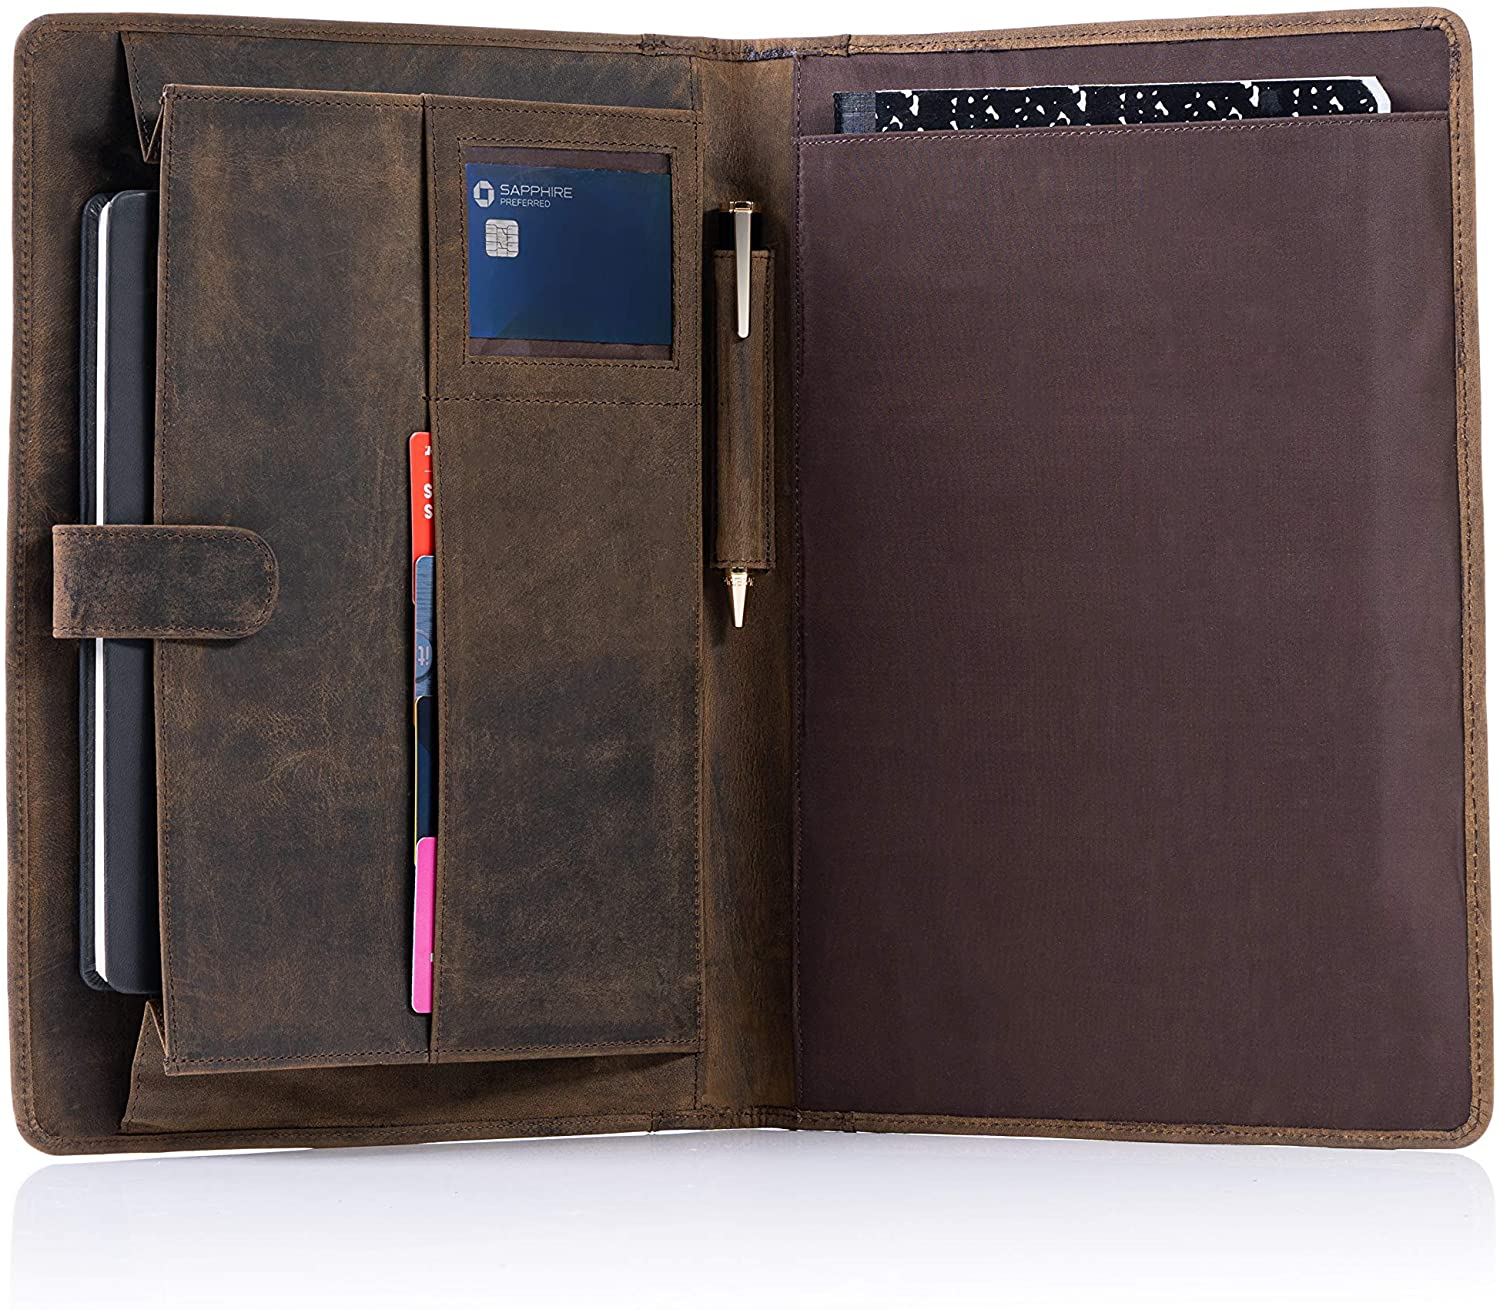 <strong>4. KomalC Leather Portfolio</strong>